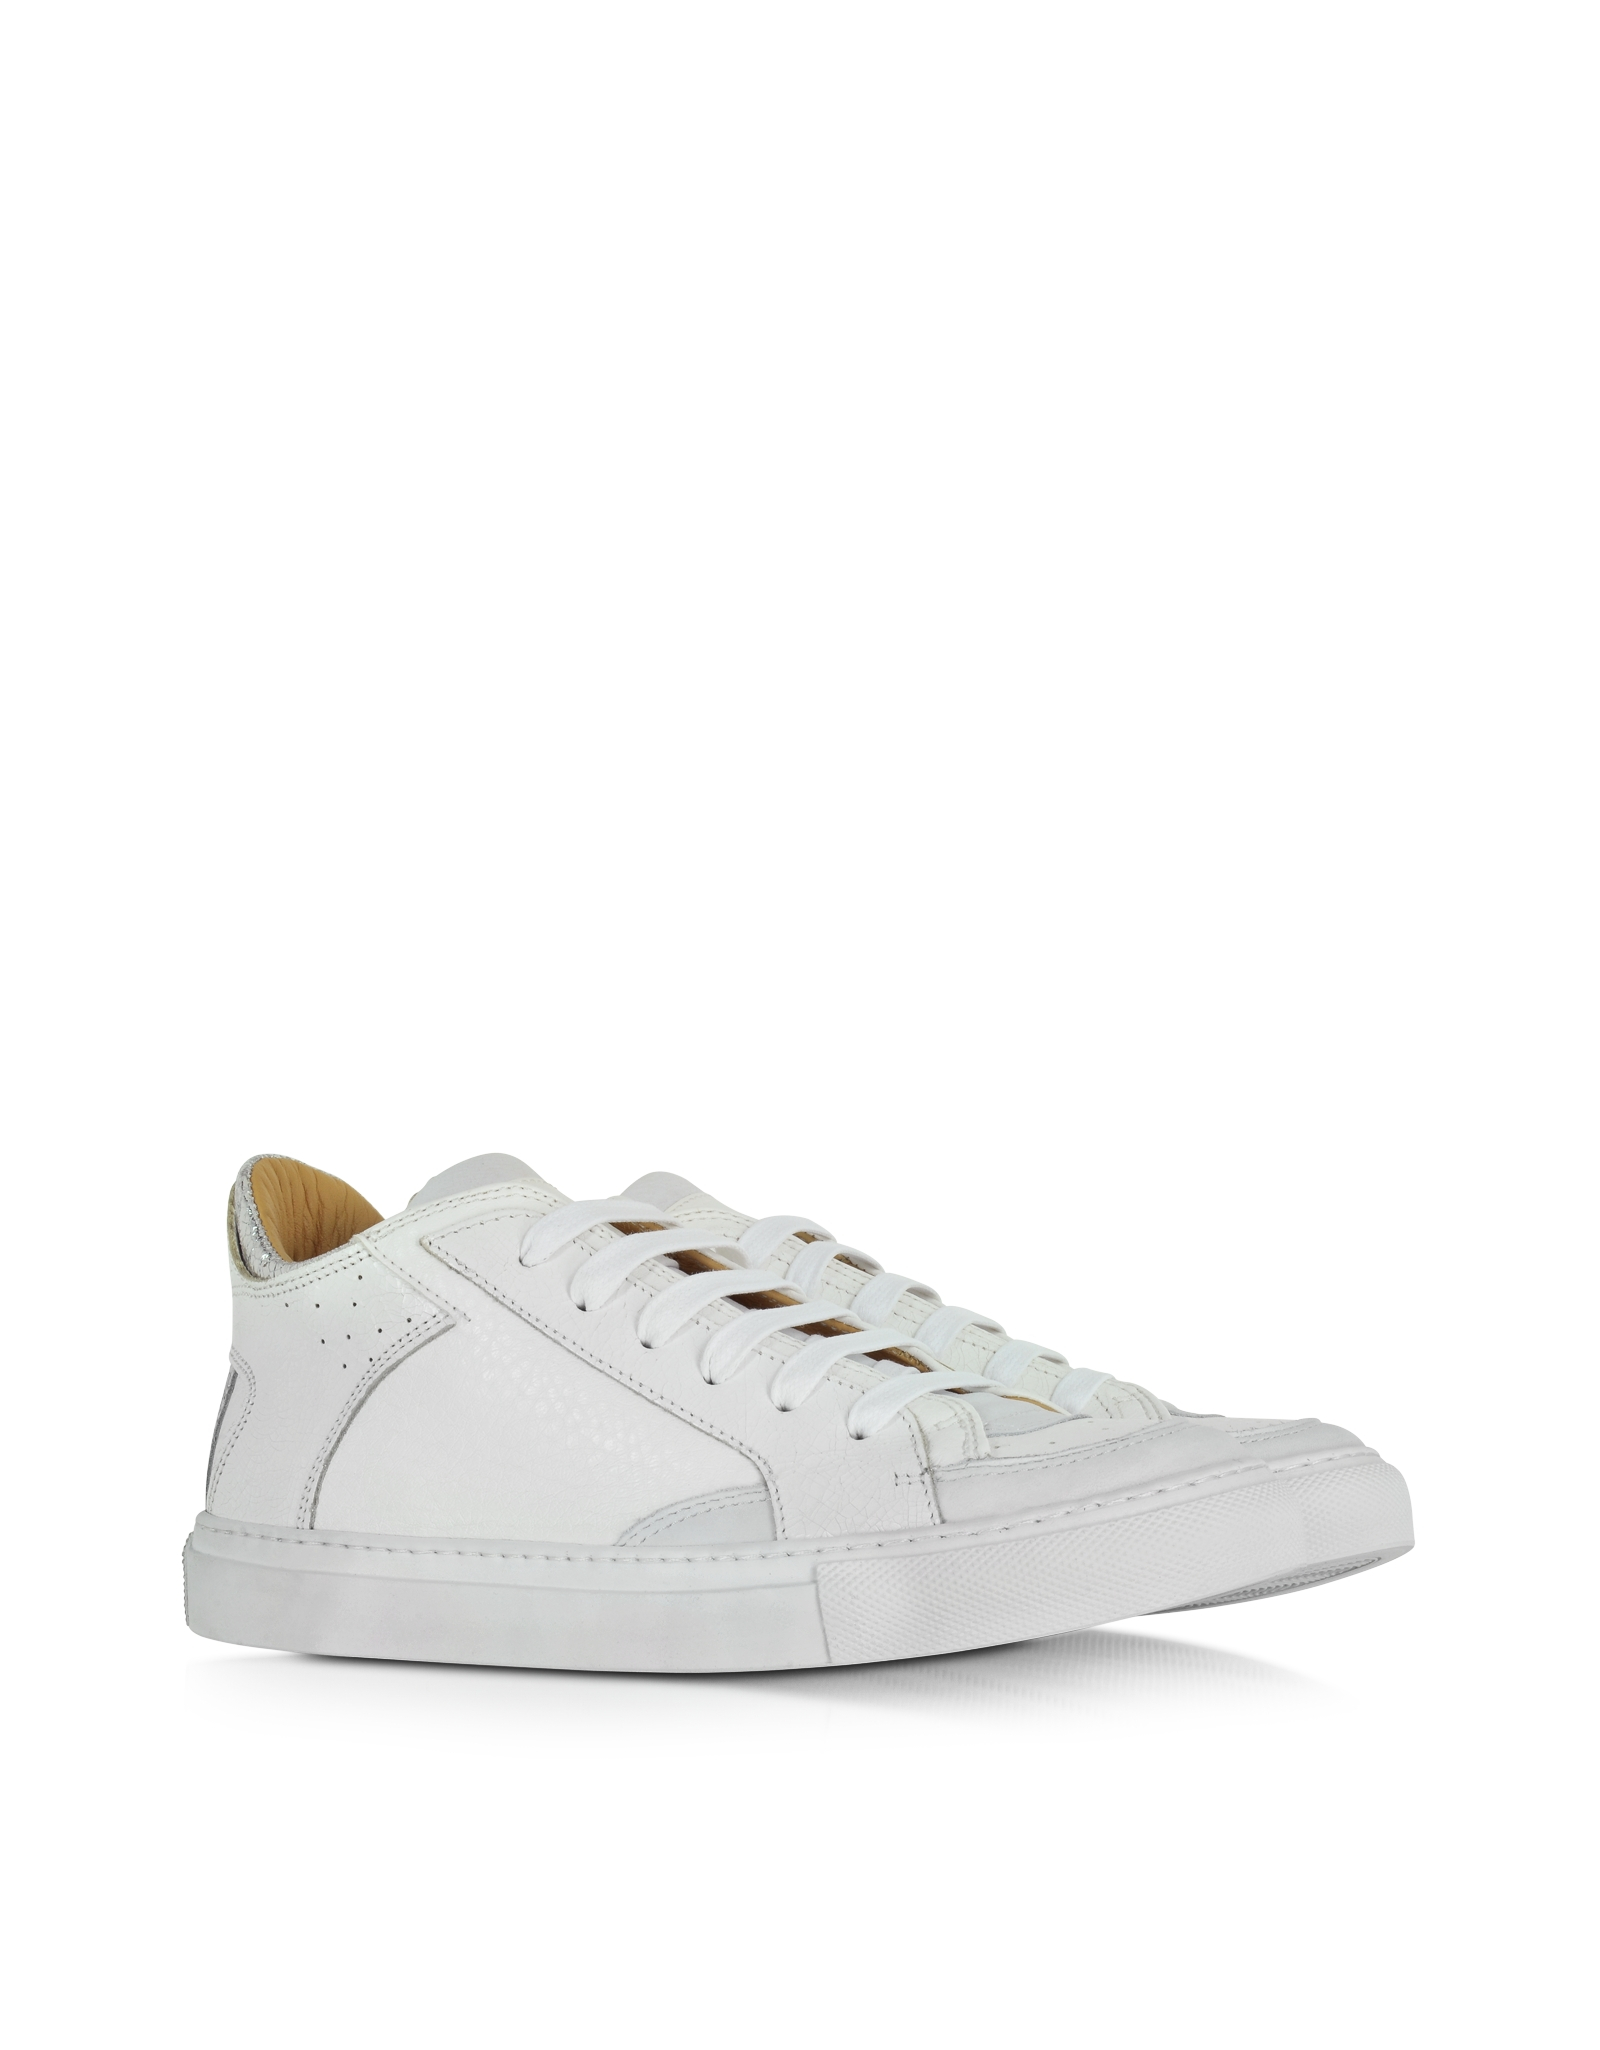 best sale buy cheap limited edition MM6 Maison Margiela MM6 by Maison Martin Margiela Leather Low-Top Sneakers websites vhw6p